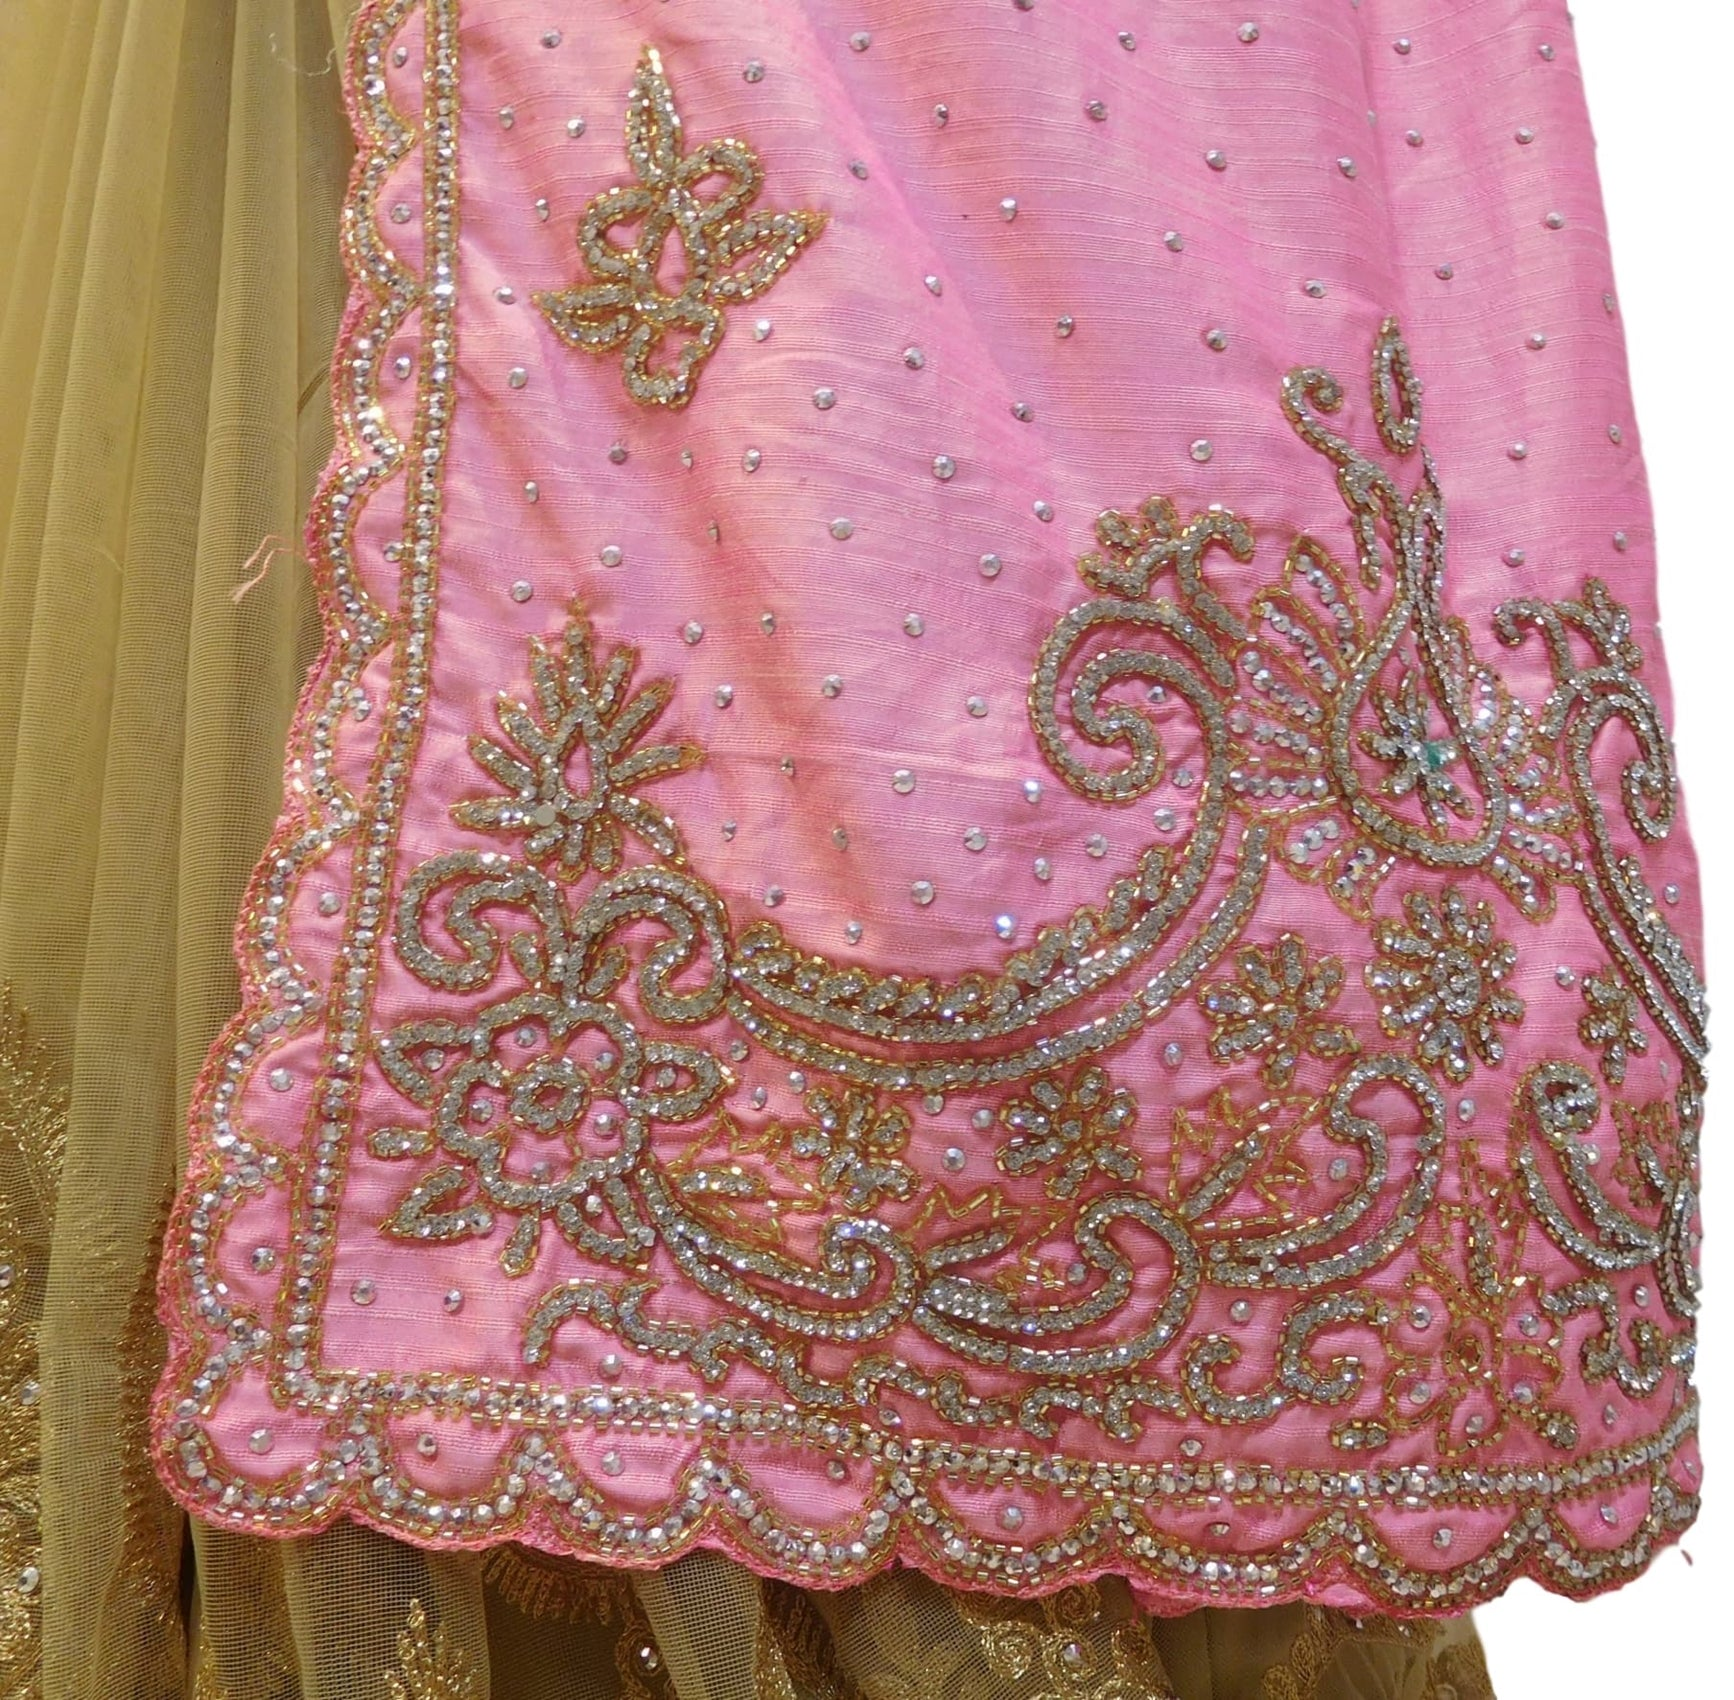 Pink & Beige Designer Silk & Net Hand Embroidery Thread Stone Cutdana Work Saree Sari